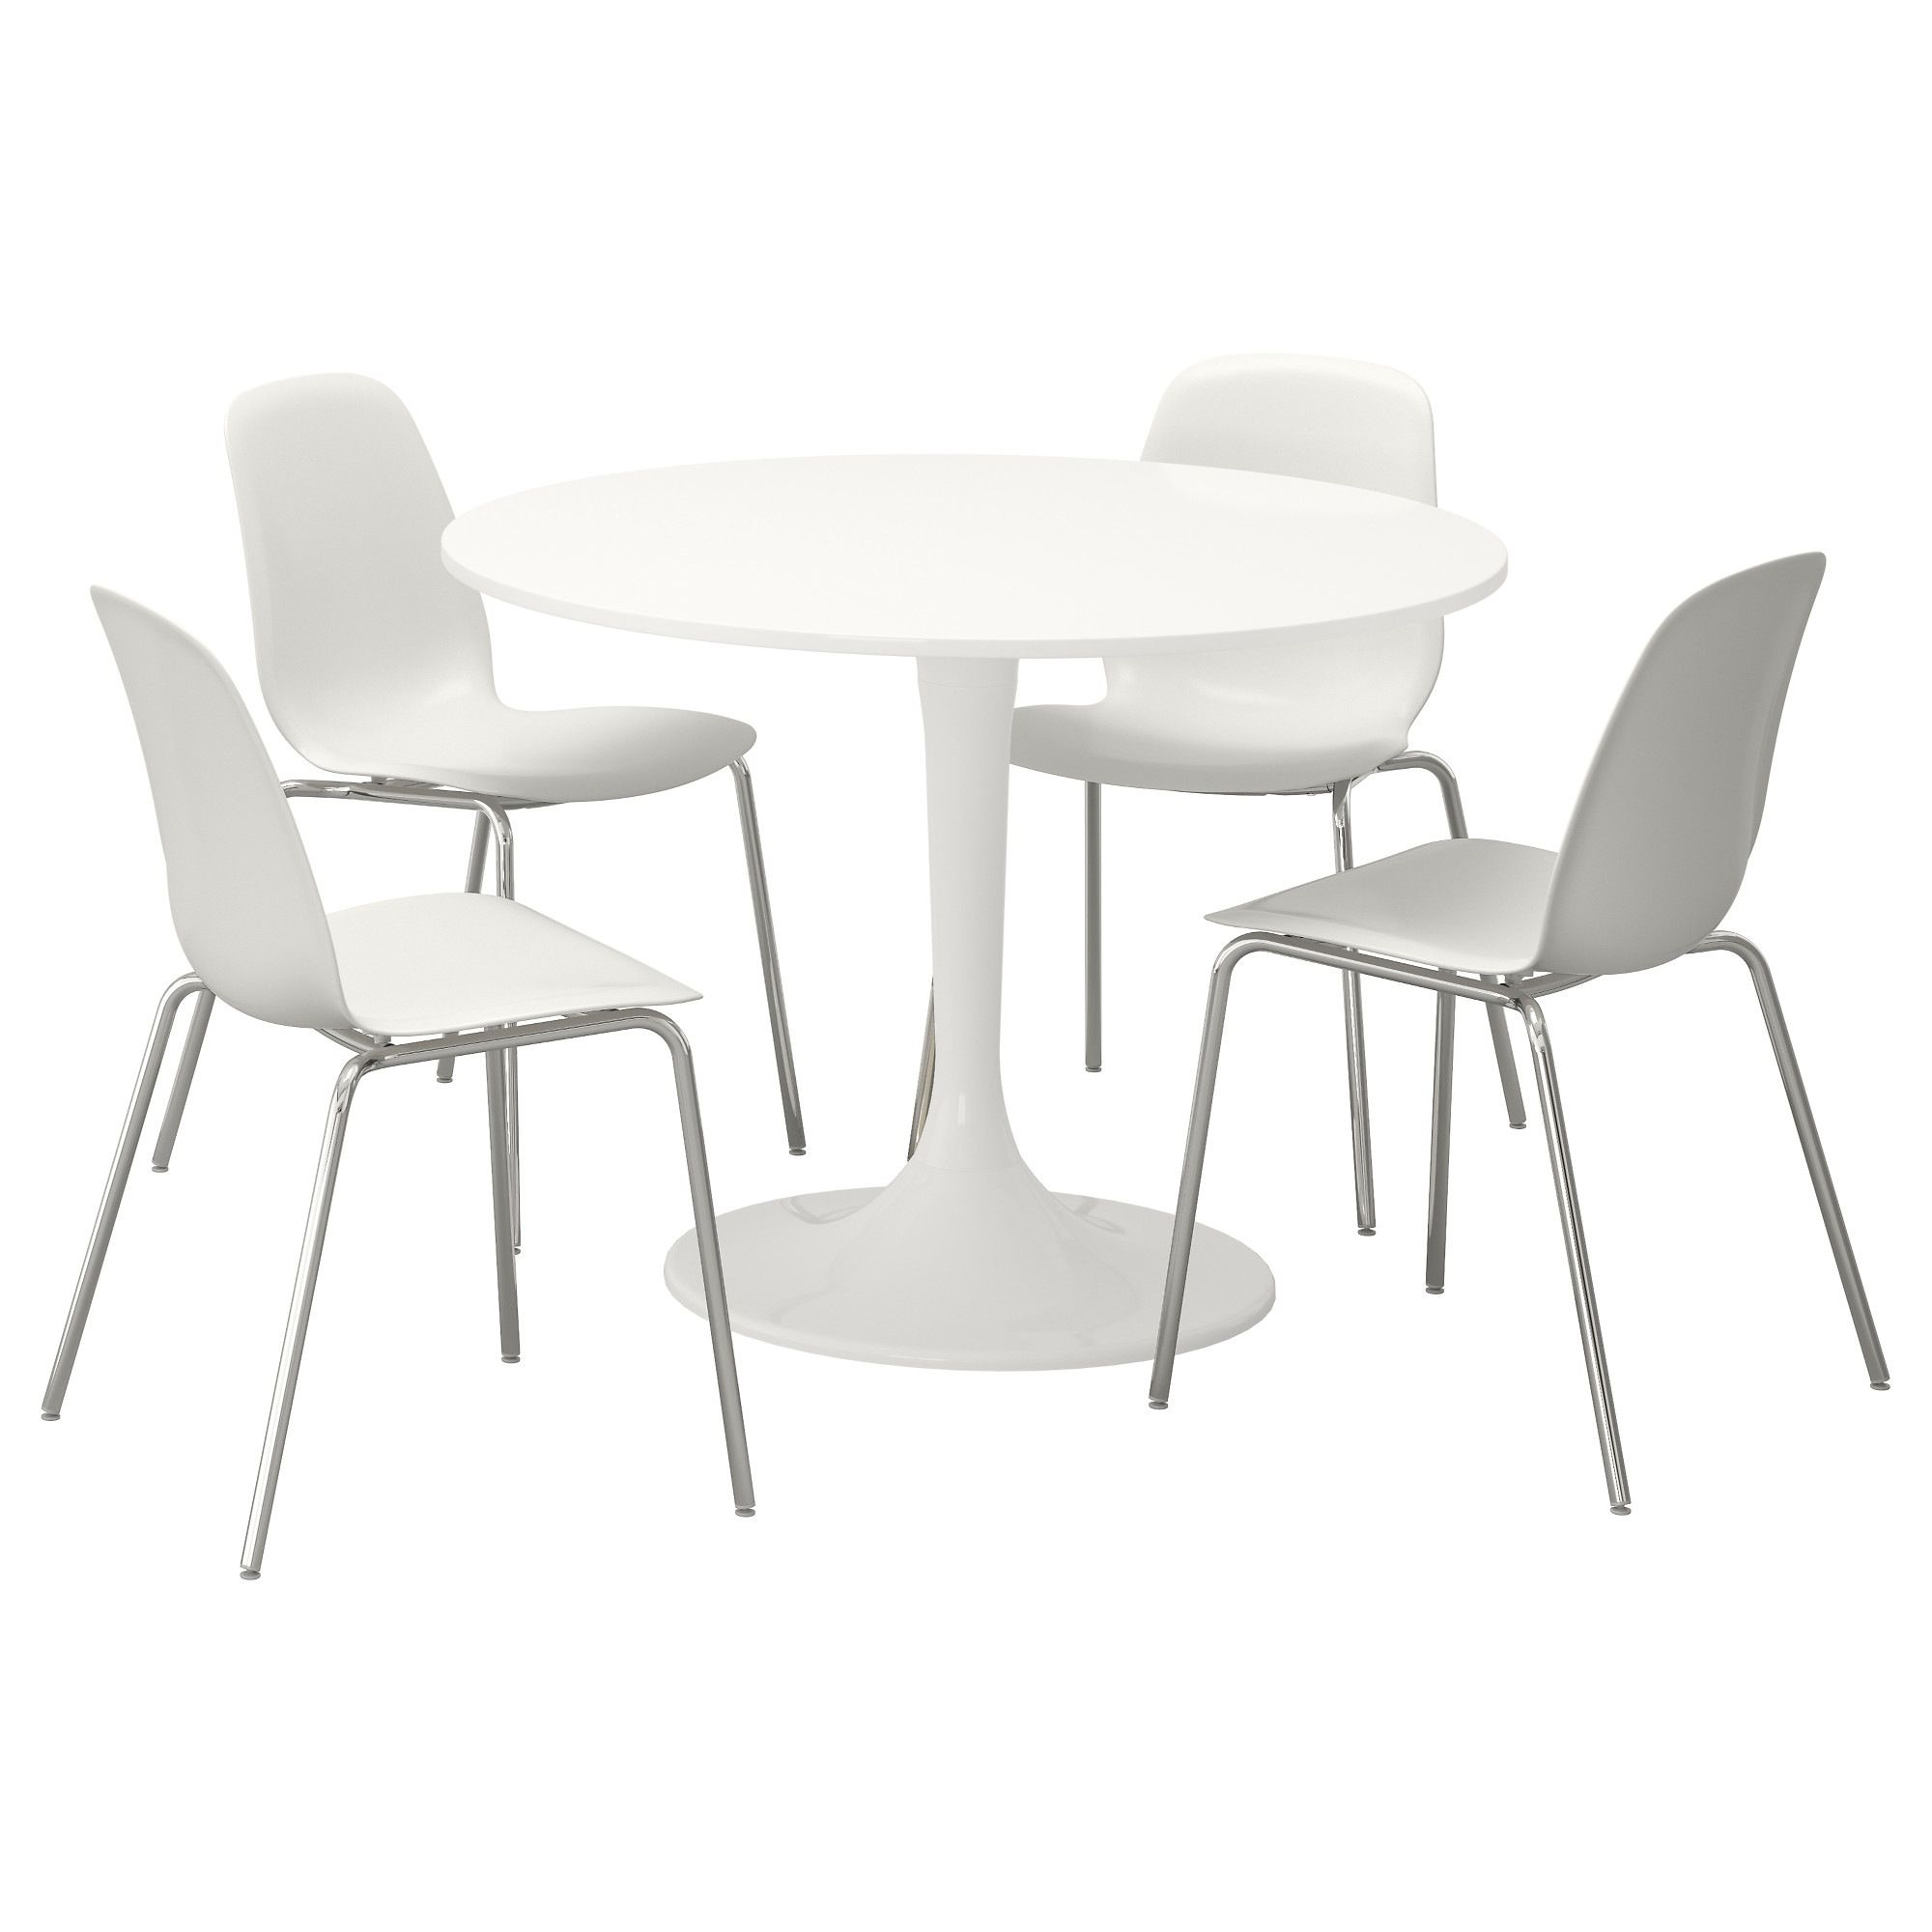 DOCKSTA / LEIFARNE Table and 4 chairs white, white 41 3